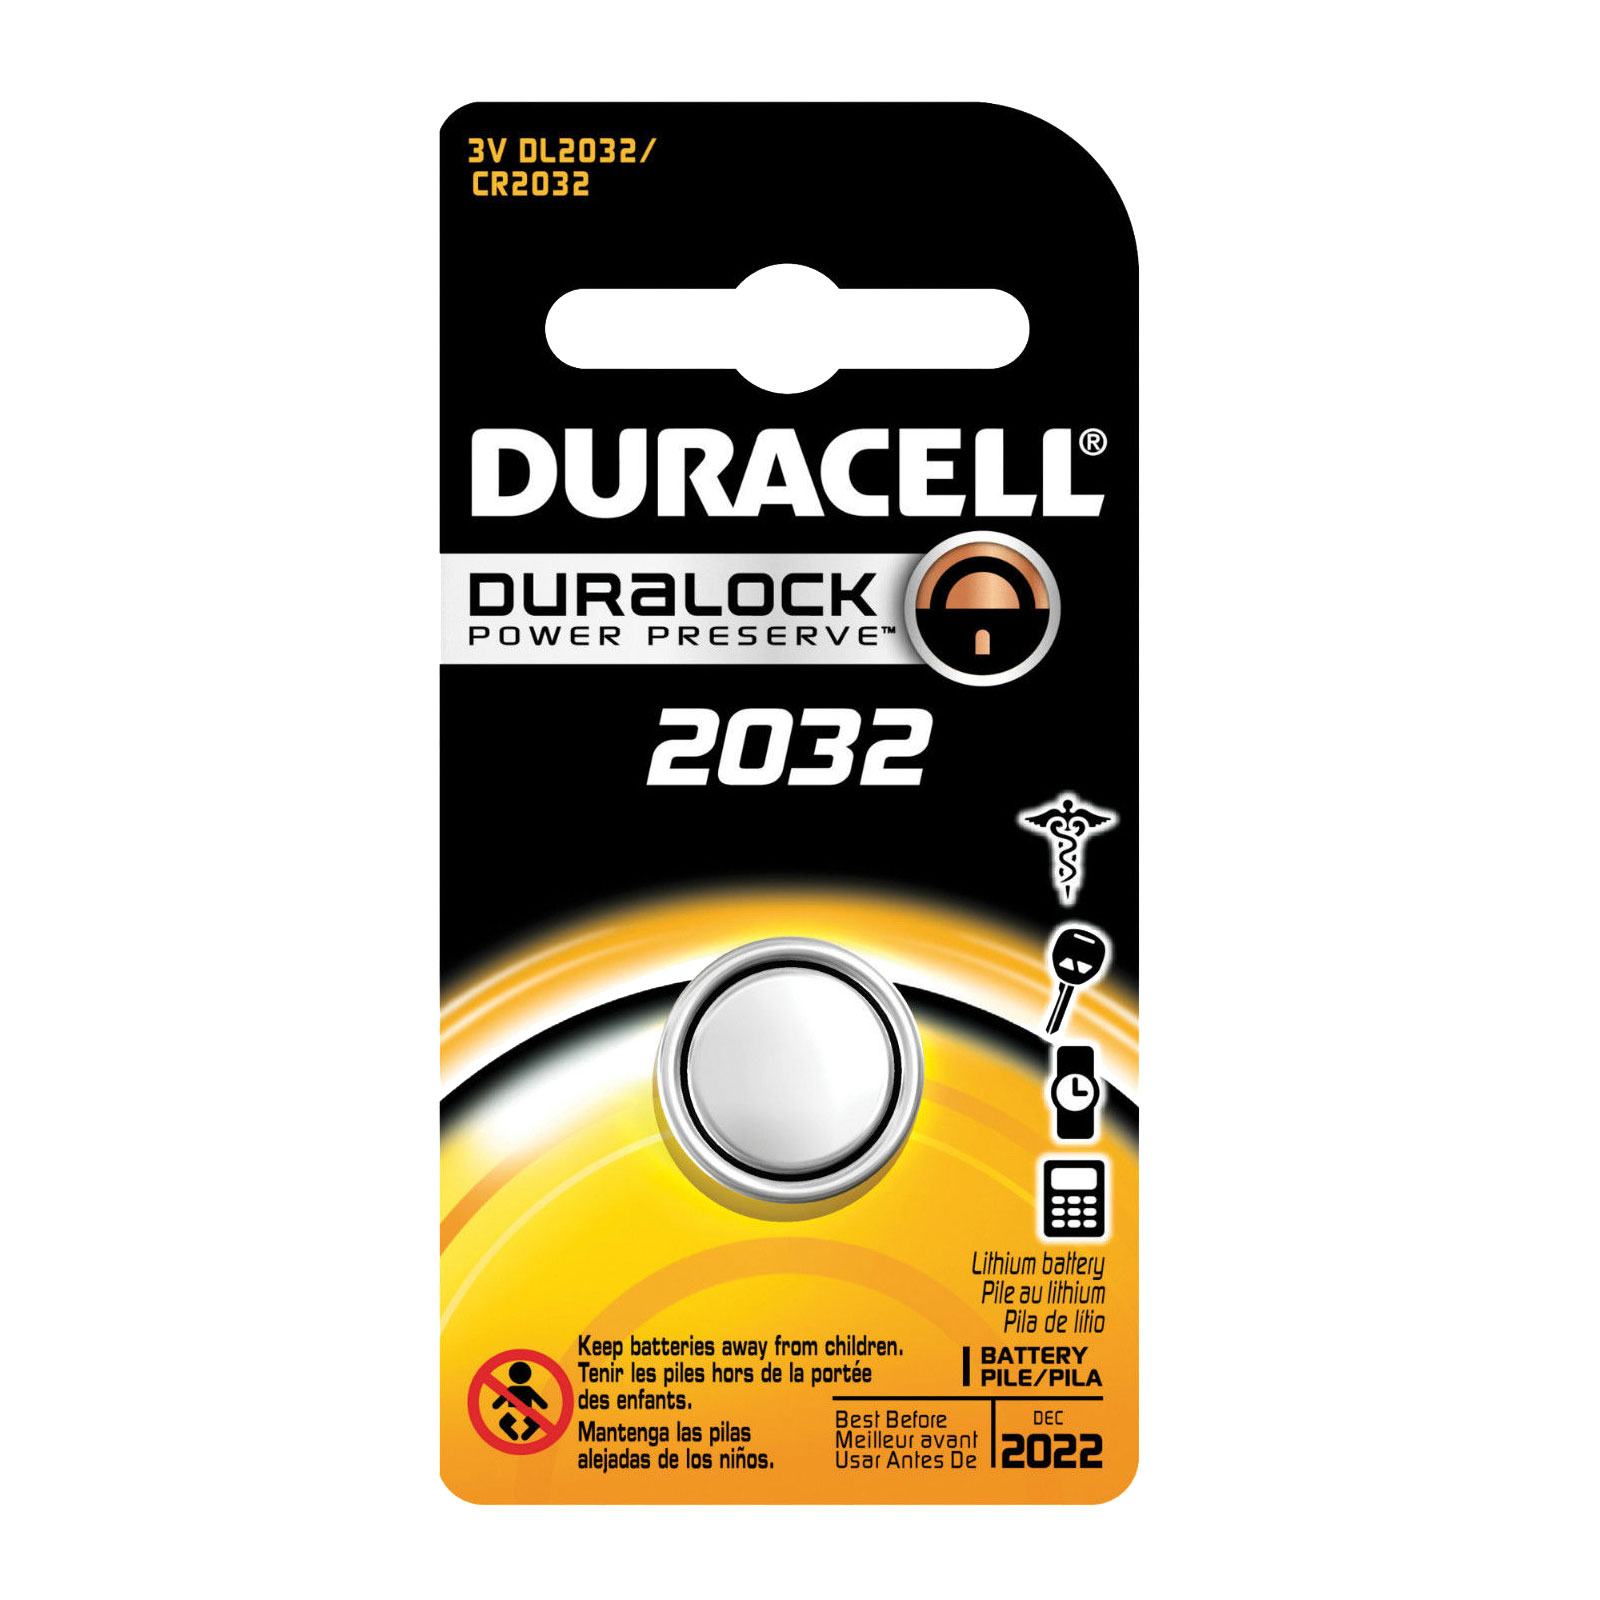 duracell coin cell battery dl2032 3v lithium replaces. Black Bedroom Furniture Sets. Home Design Ideas